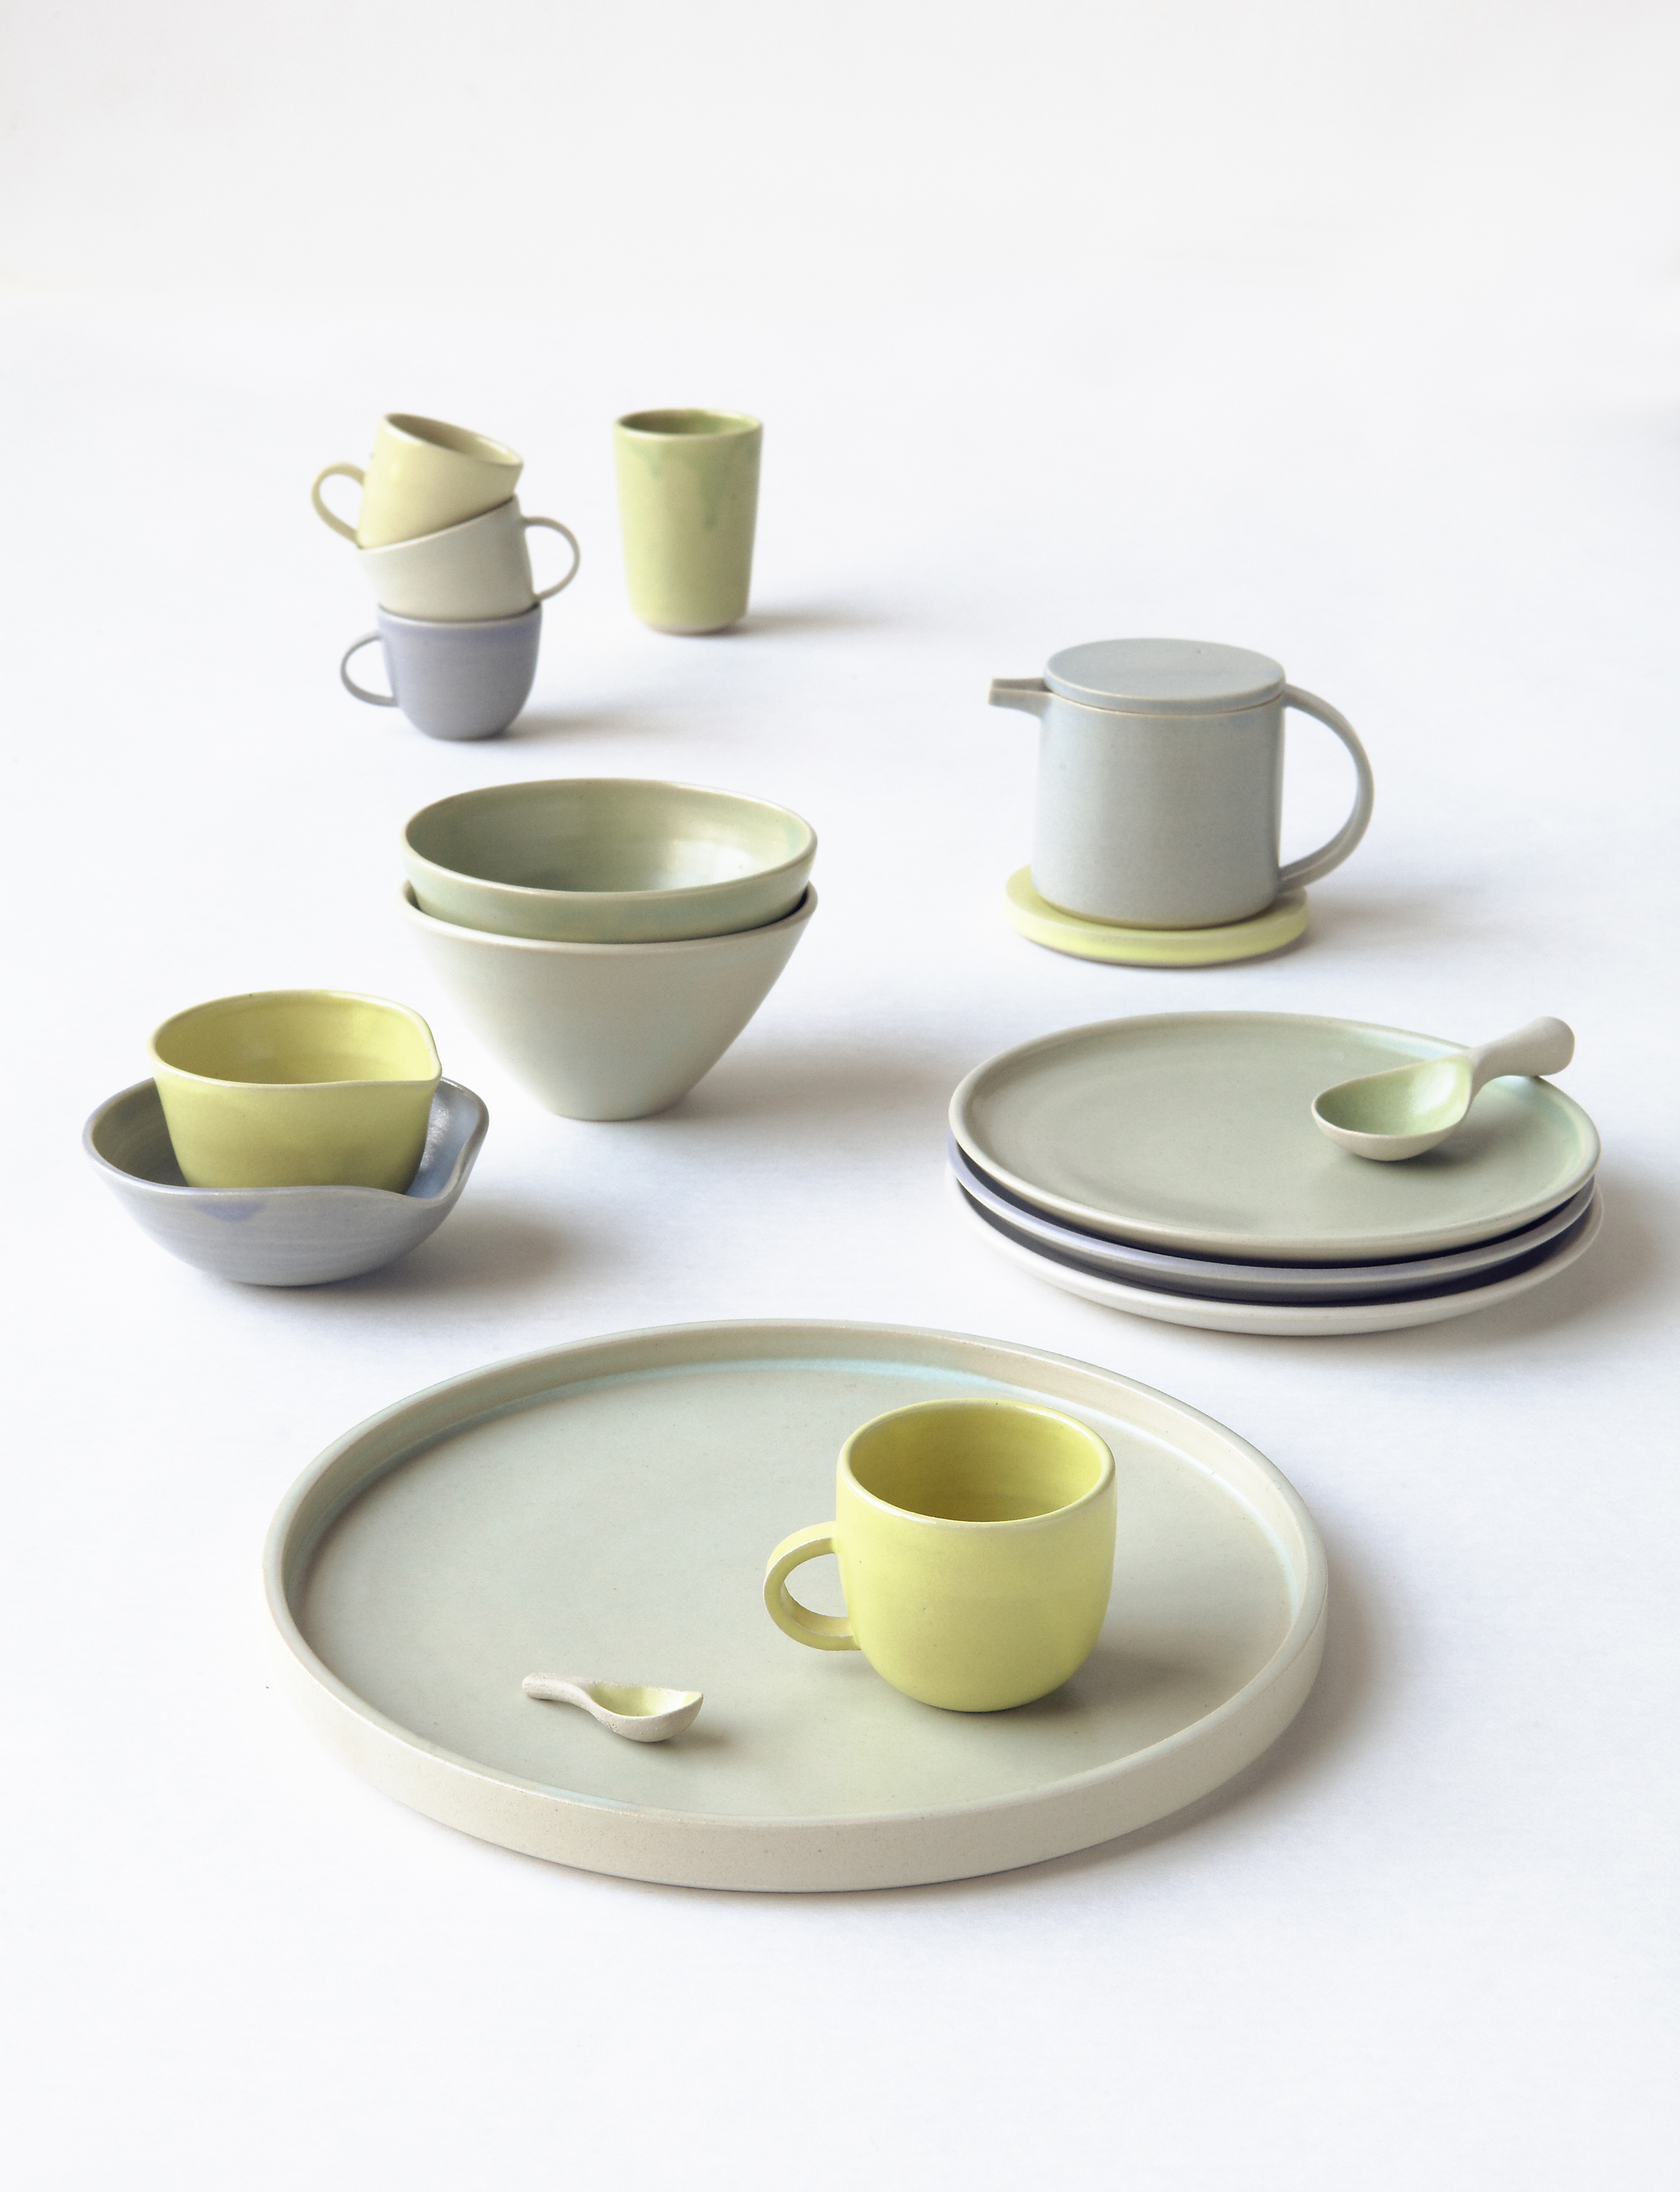 Toi / collection of tableware for children. 2013  Photography by Chikako Harada